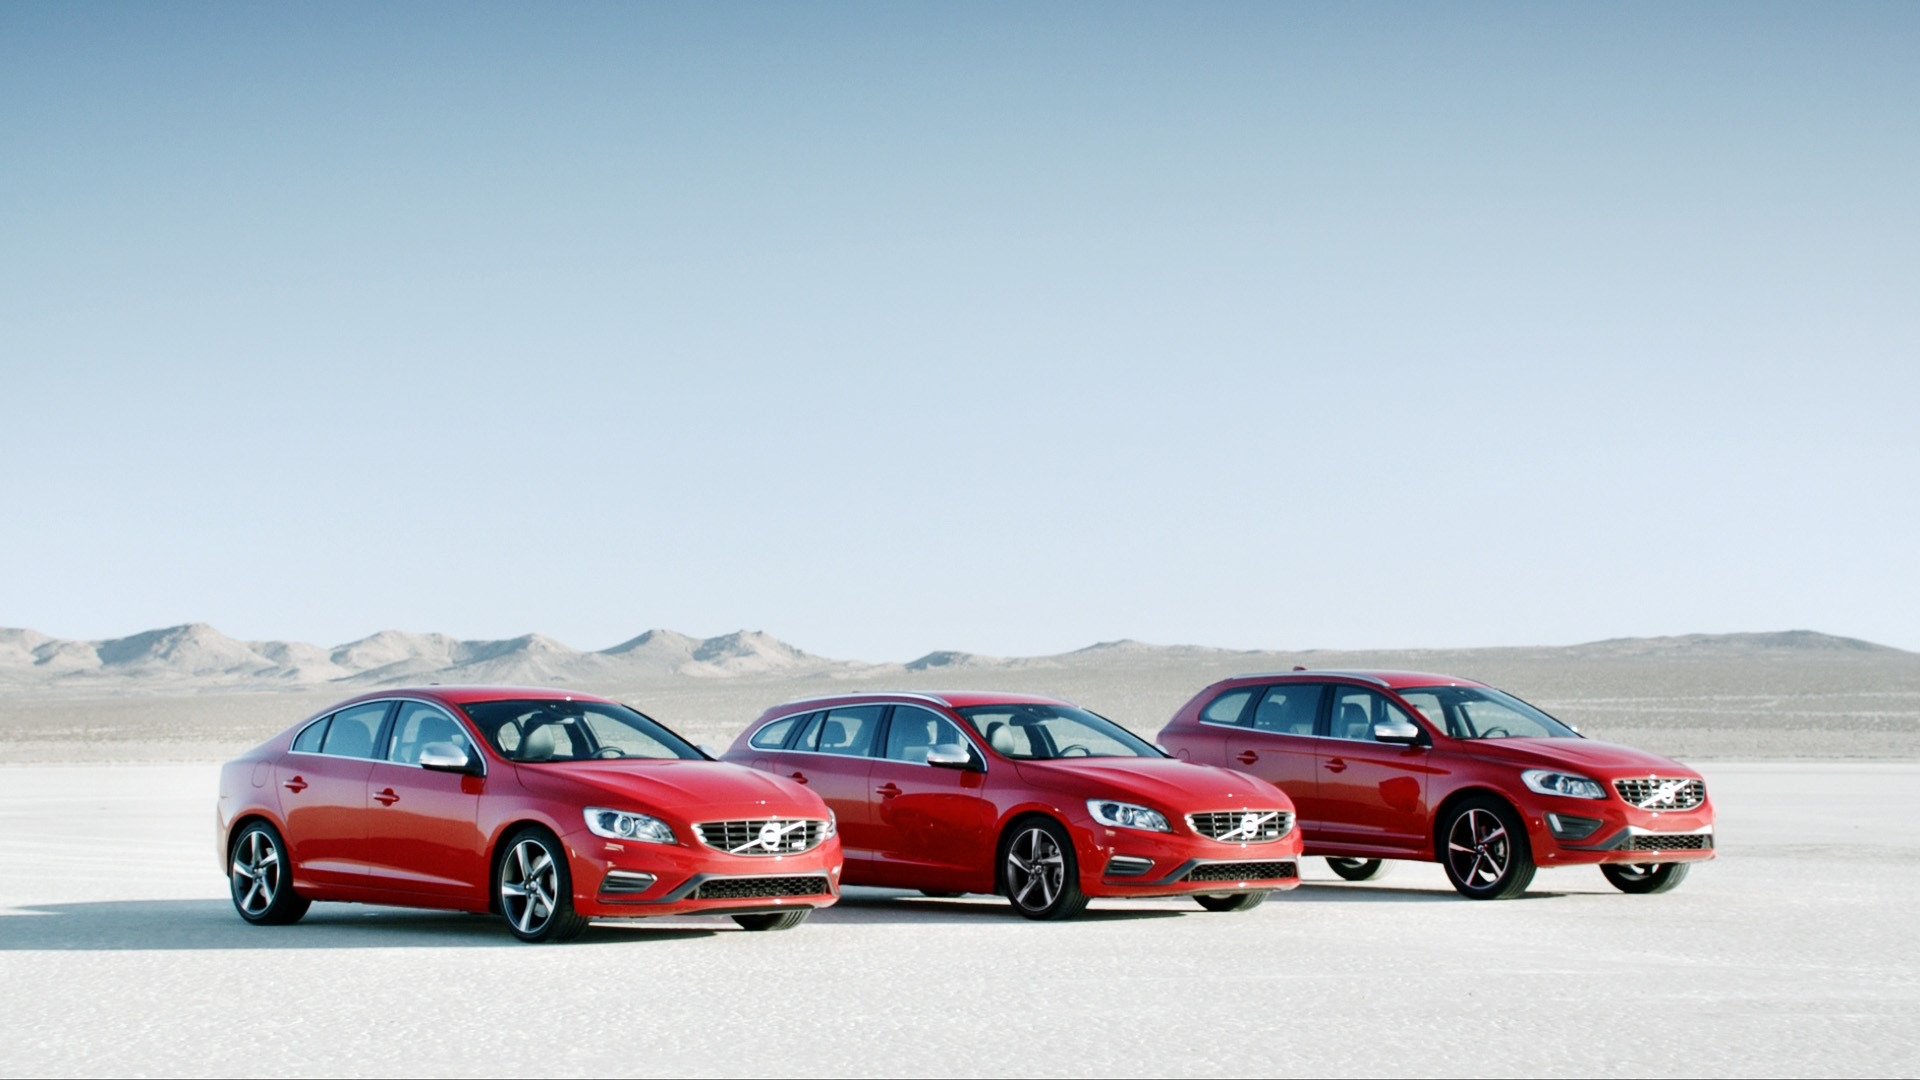 Volvo S60, V50 And XC60 In Red -  Volvo